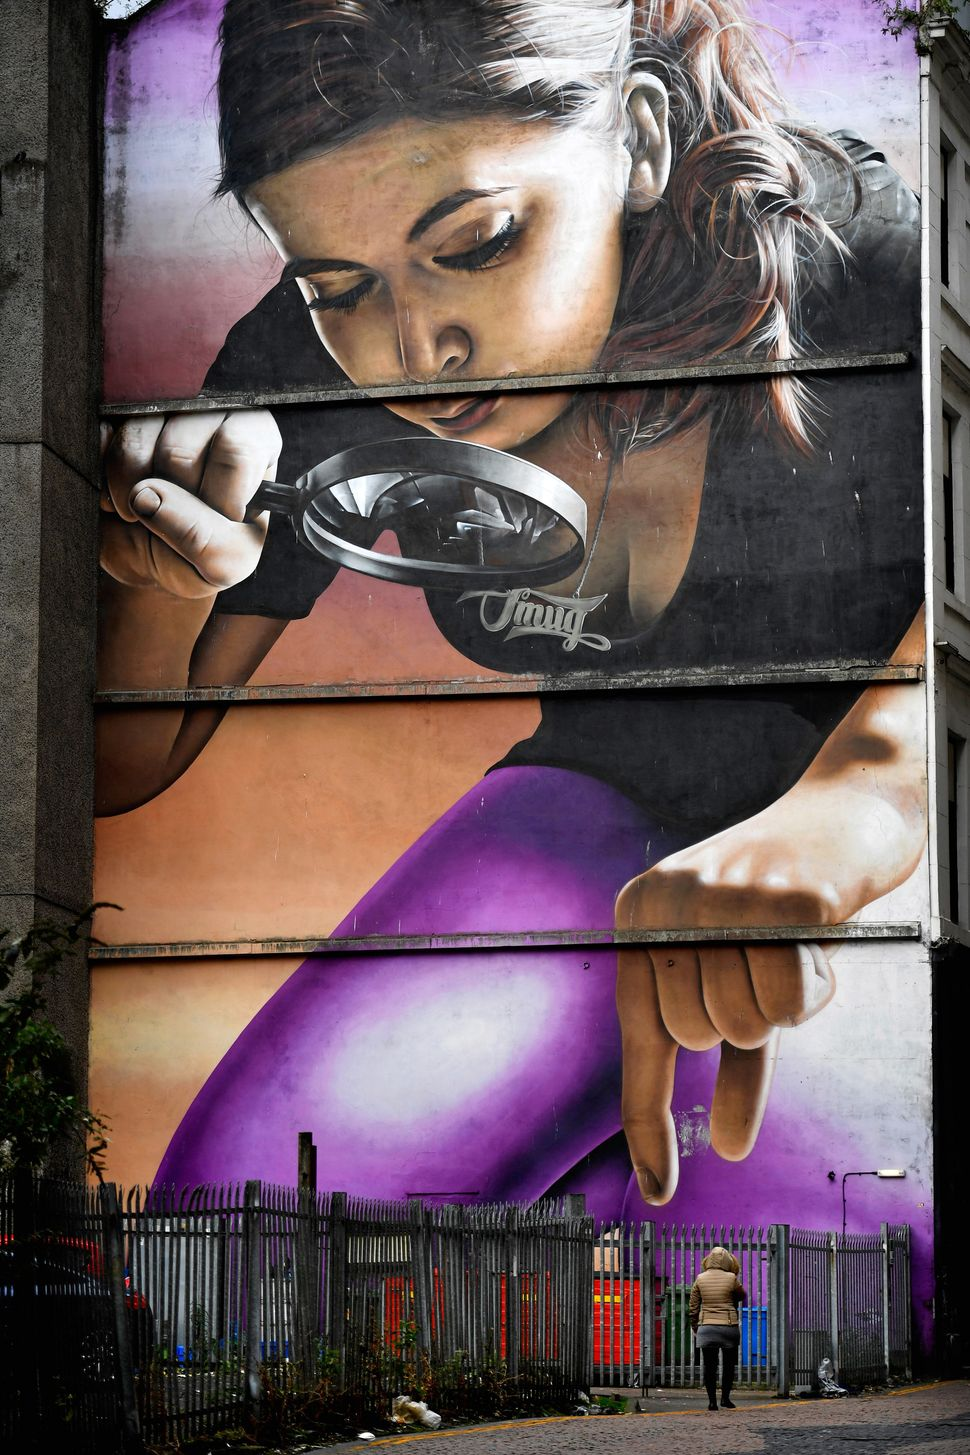 A woman walks past one of the murals on Mitchel Lane.